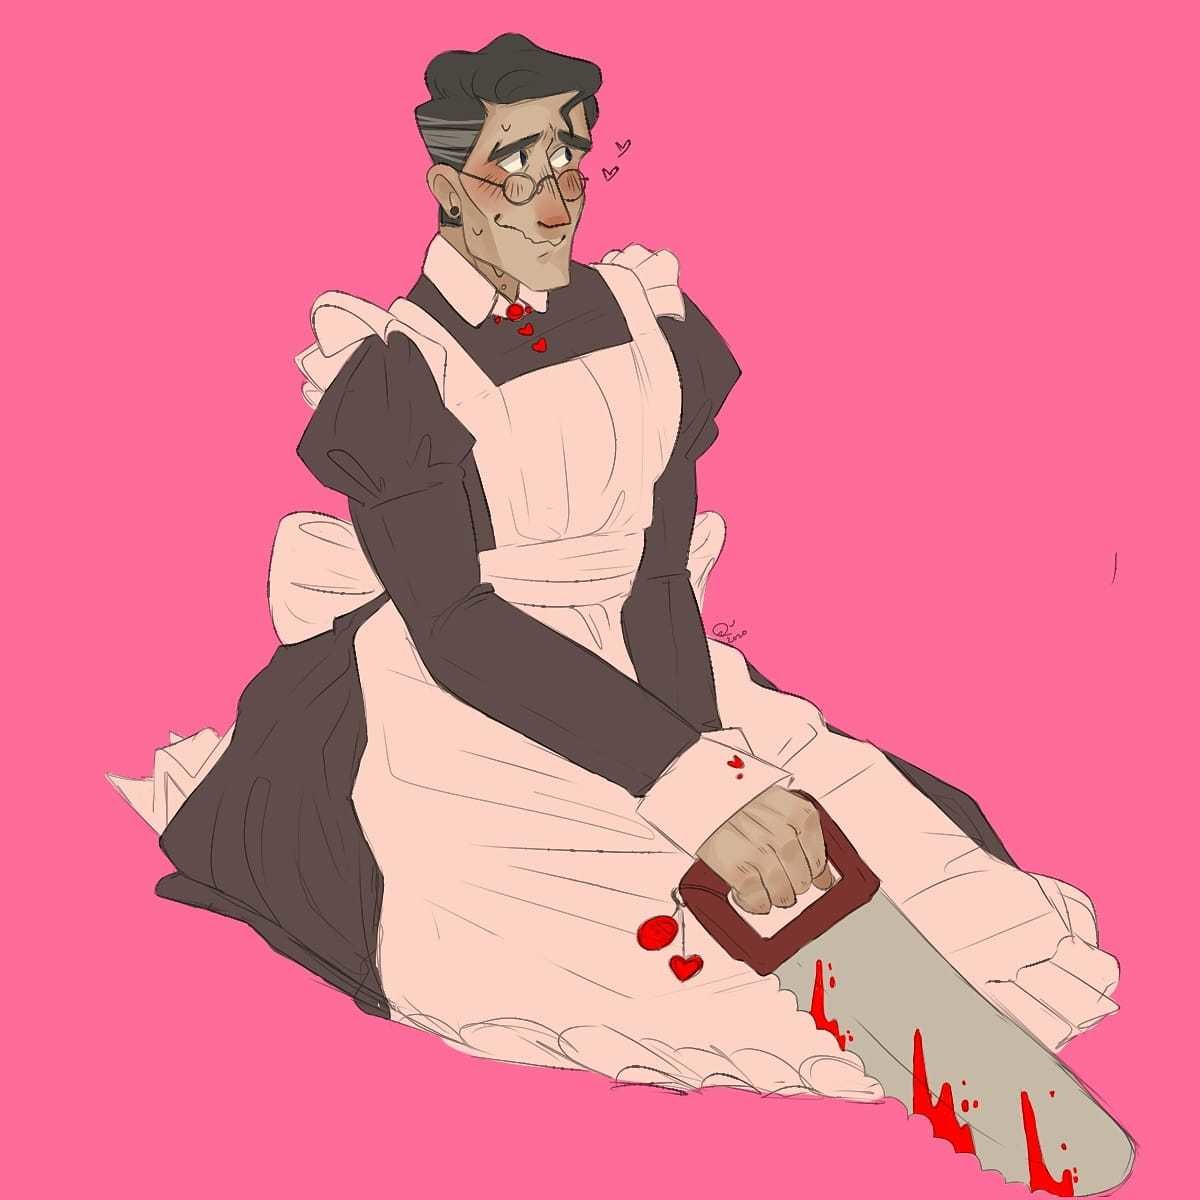 TF2 Maids. join list: SplendidServants (494 subs)Mention Clicks: 38997Msgs Sent: 936701Mention History join list:. You forgot the cringe channel